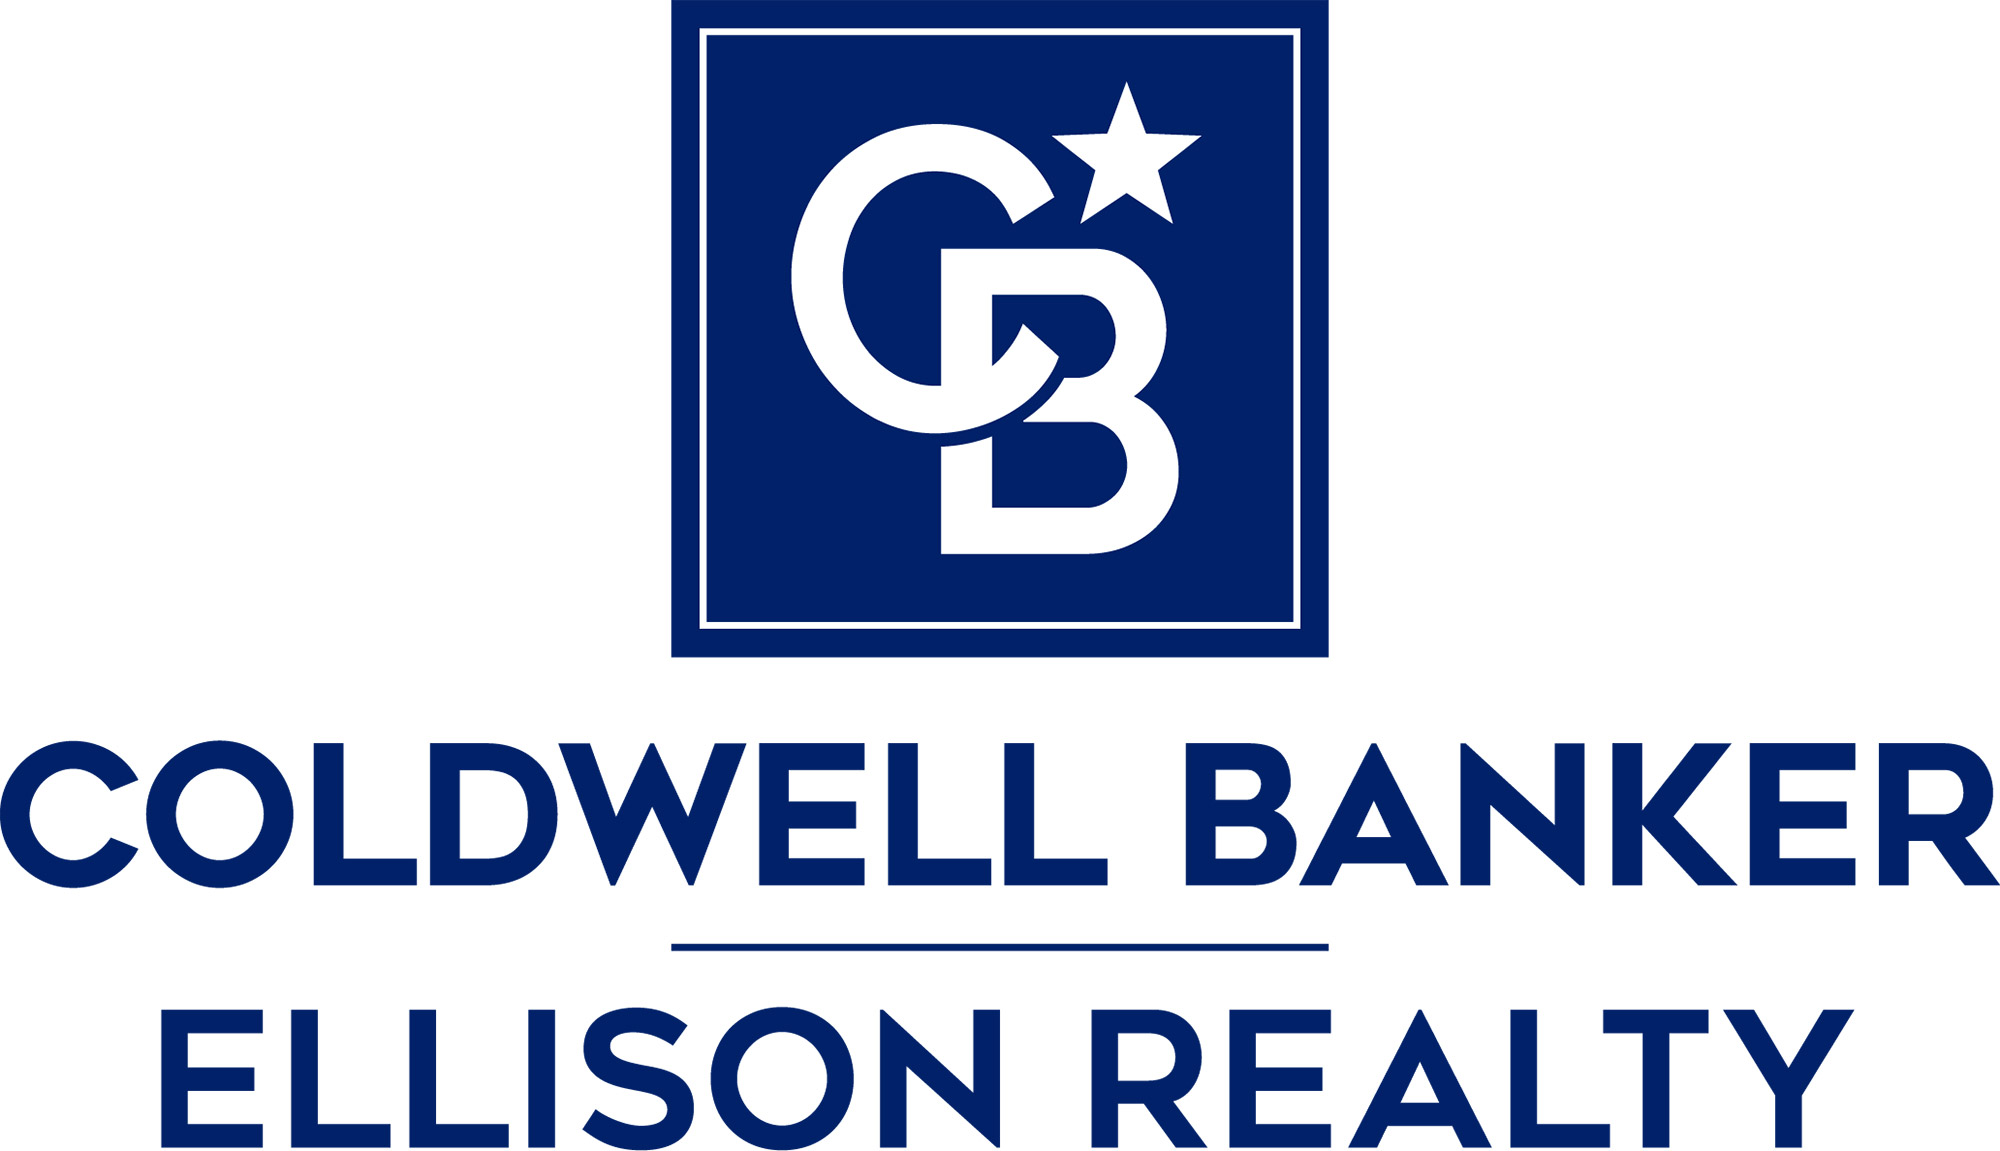 Andy Love - Coldwell Banker Ellison Realty